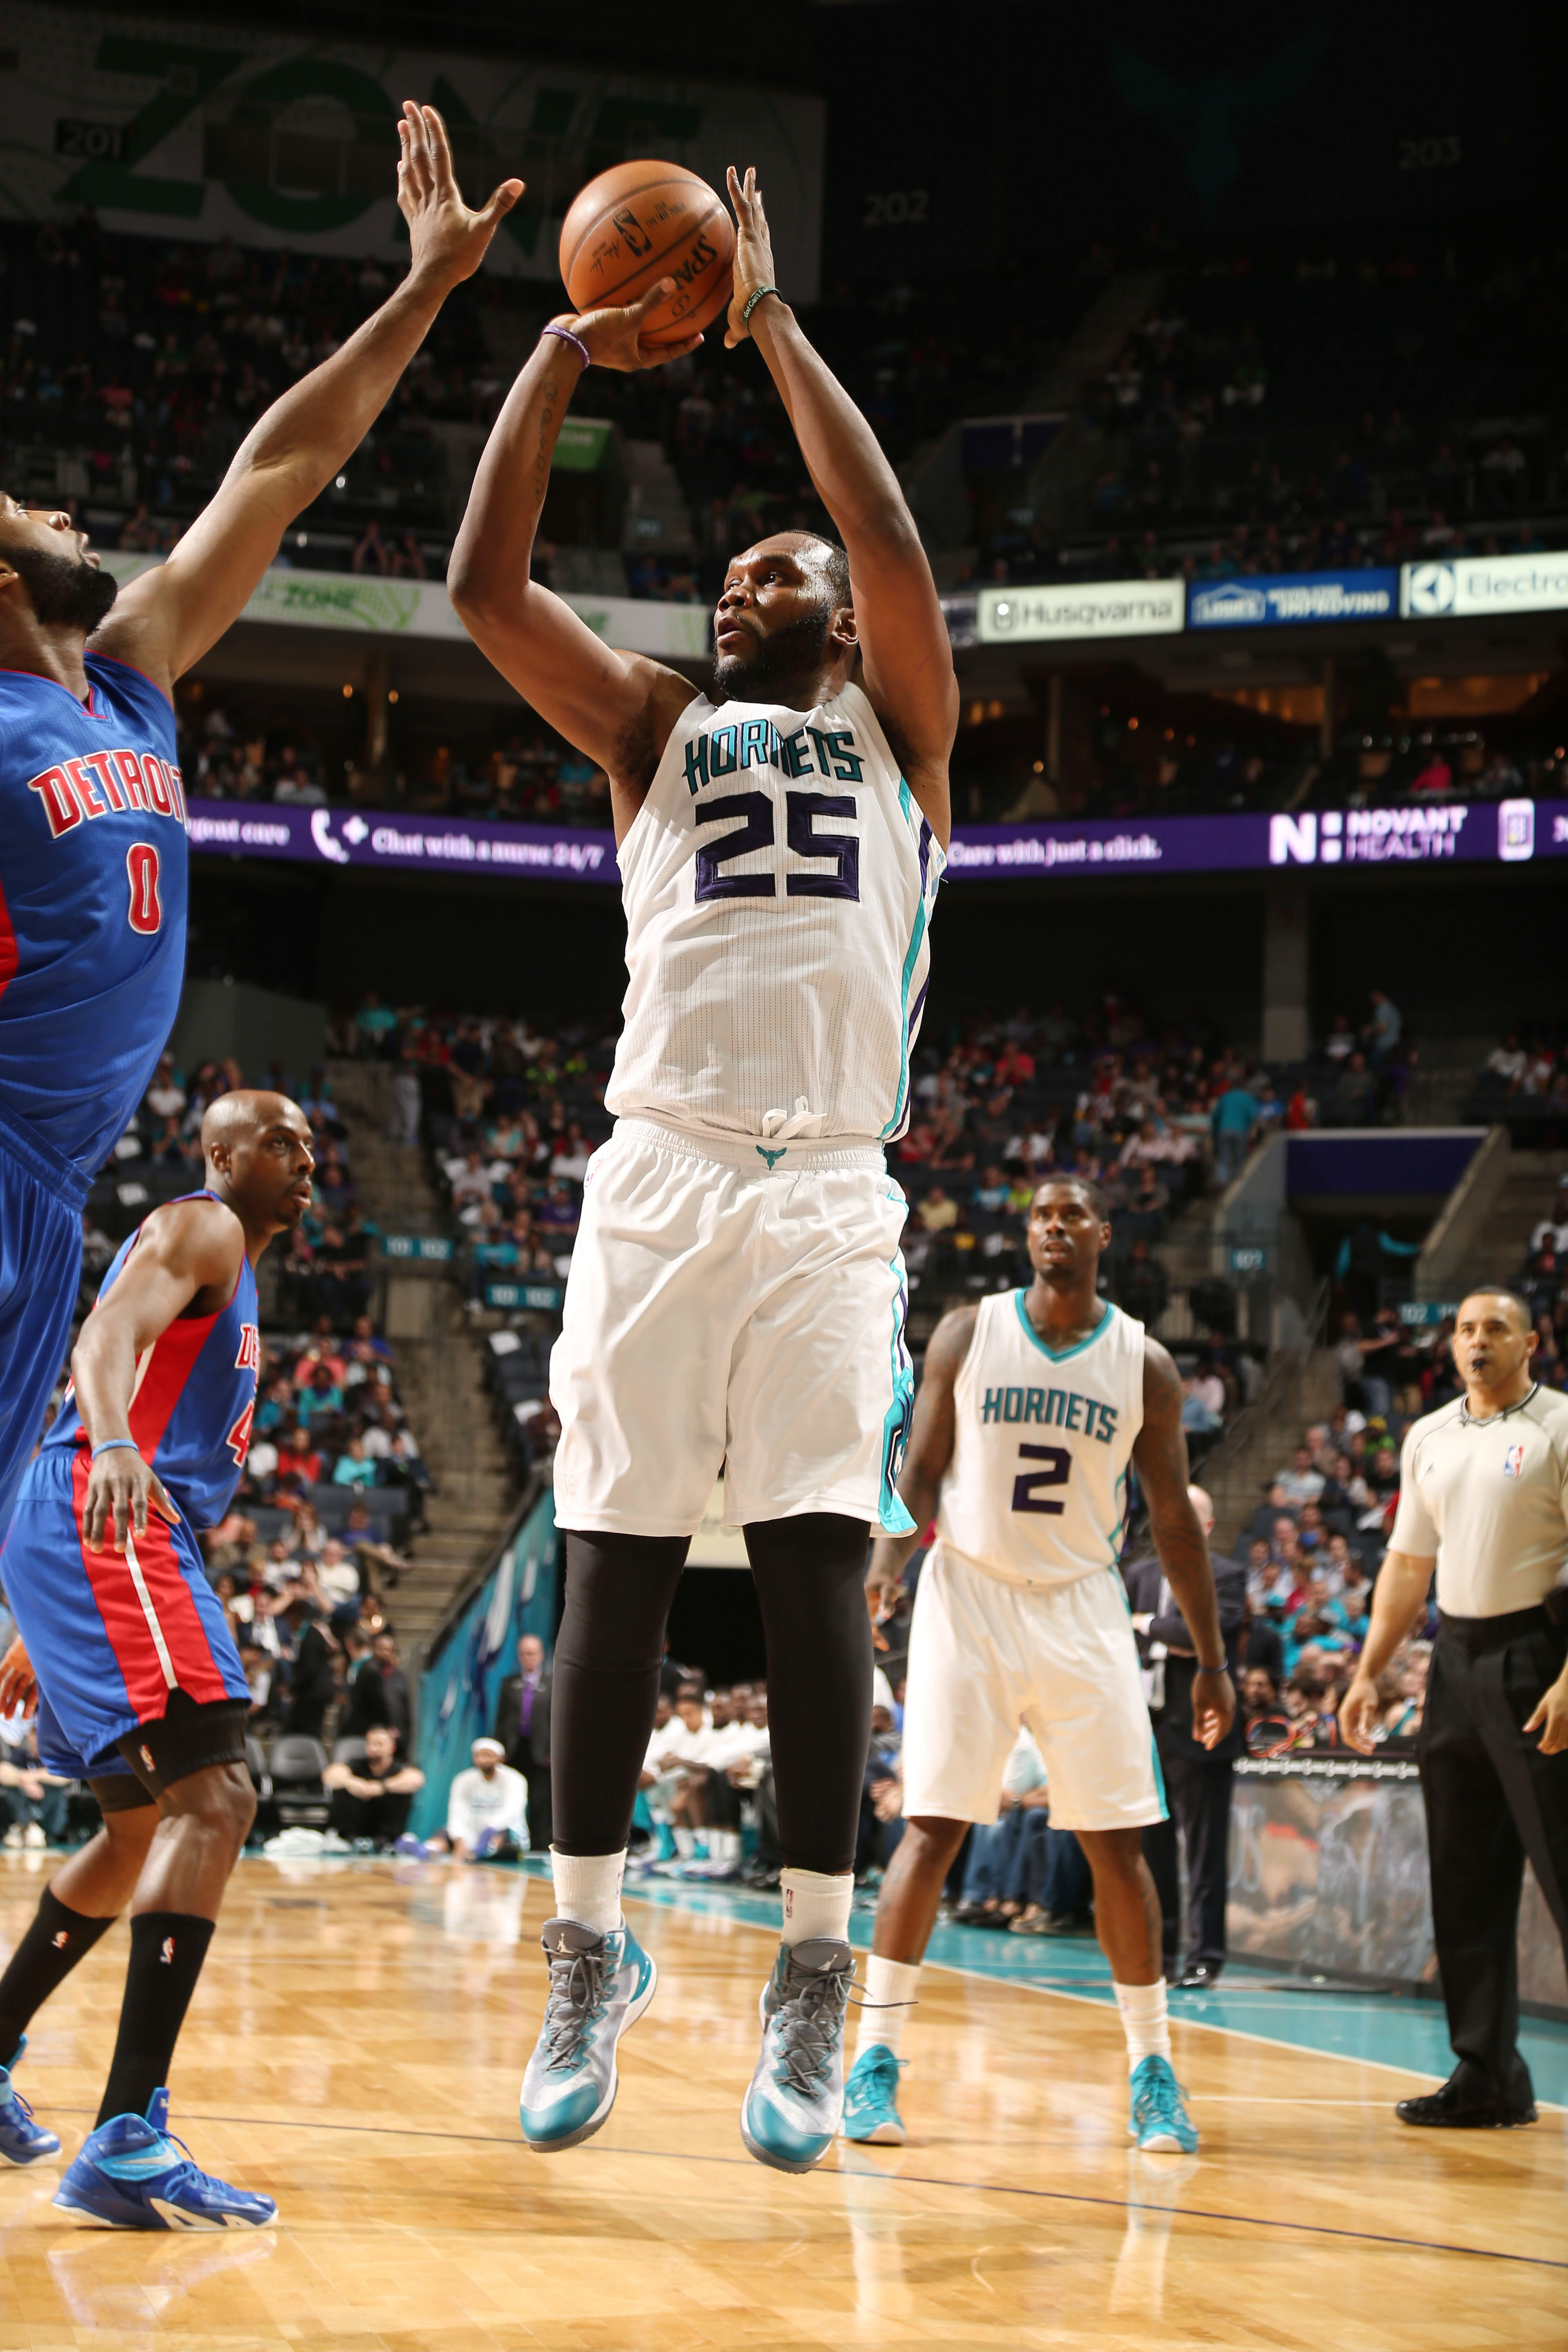 CHARLOTTE, NC - APRIL 1:  Al Jefferson #25 of the Charlotte Hornets shoots against Andre Drummond #0 of the Detroit Pistons during the game at the Time Warner Cable Arena on April 1, 2015 in Charlotte, North Carolina. (Photo by Brock Williams-Smith/NBAE v